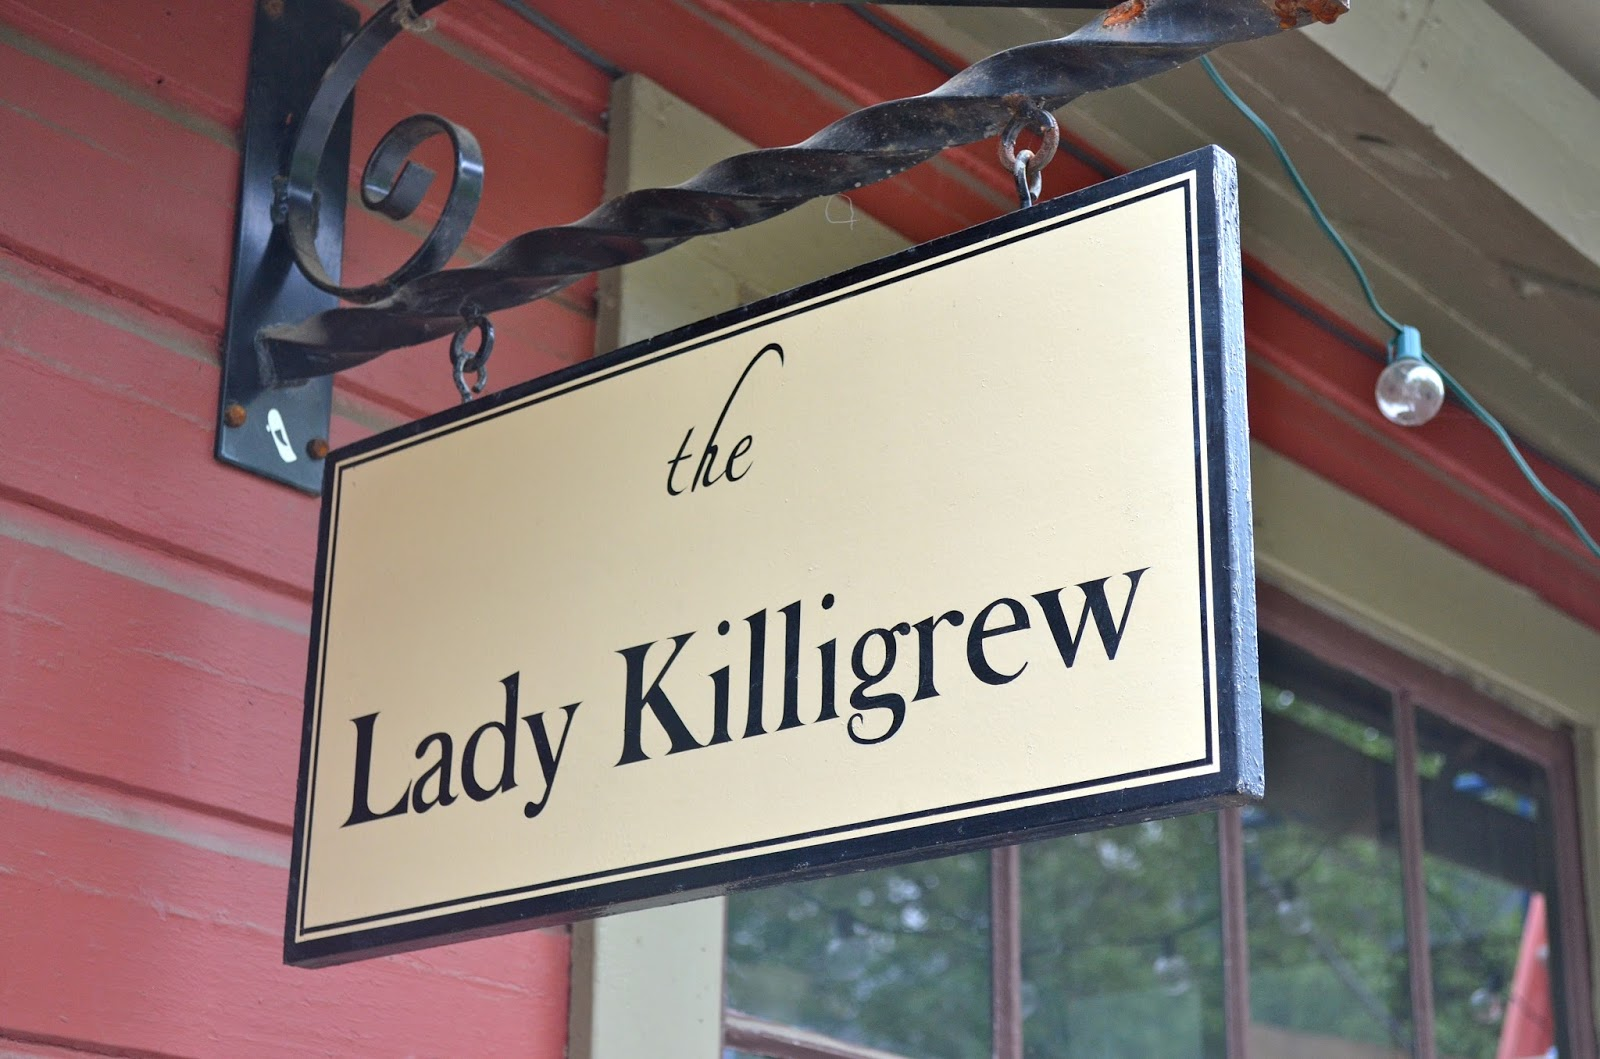 The Lady Killigrew